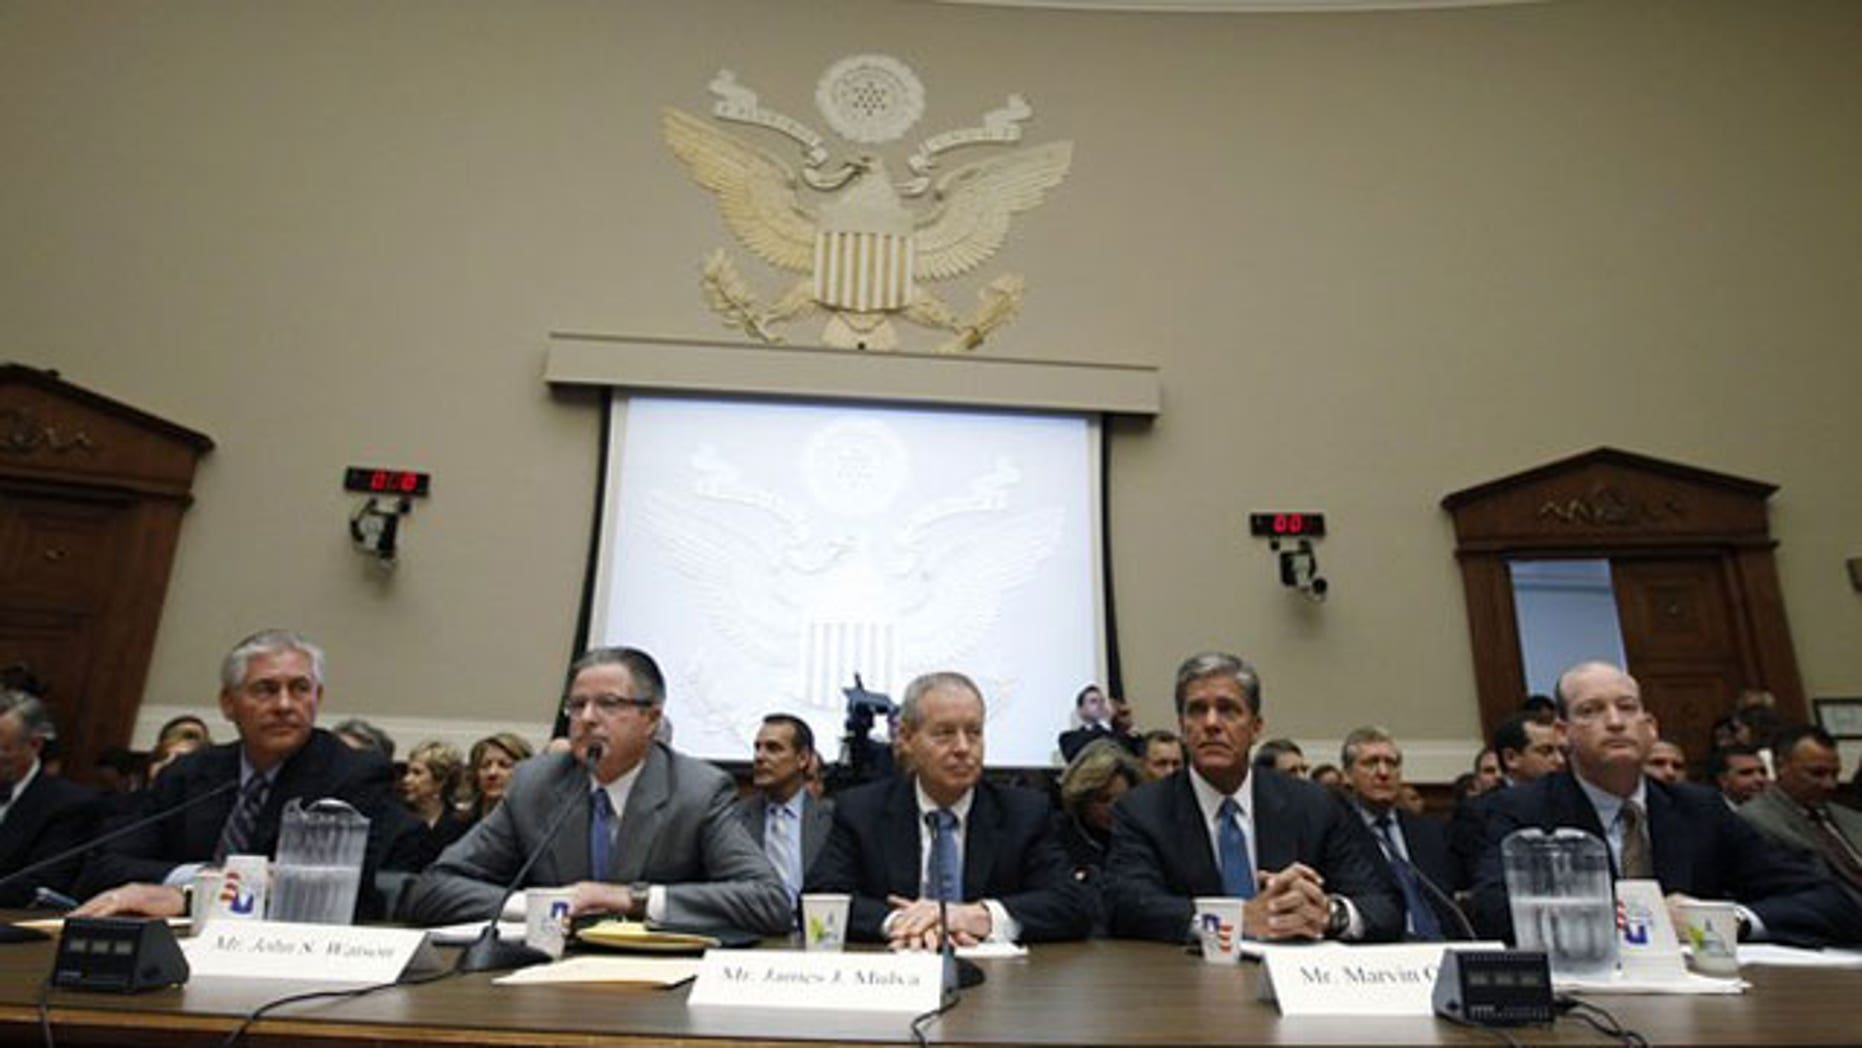 June 15: Oil company executives, (L-R) ExxonMobil Chairman and CEO Rex Tillerson, Chevron Chairman and CEO John Watson, ConocoPhillips Chairman and CEO James Mulva, Shell Oil Company President Marvin Odum and BP America Inc President and Chairman Lamar McKay testify on the BP oil spill in the Gulf of Mexico during a House Energy and Commerce hearing on Capitol Hill in Washington (Reuters).